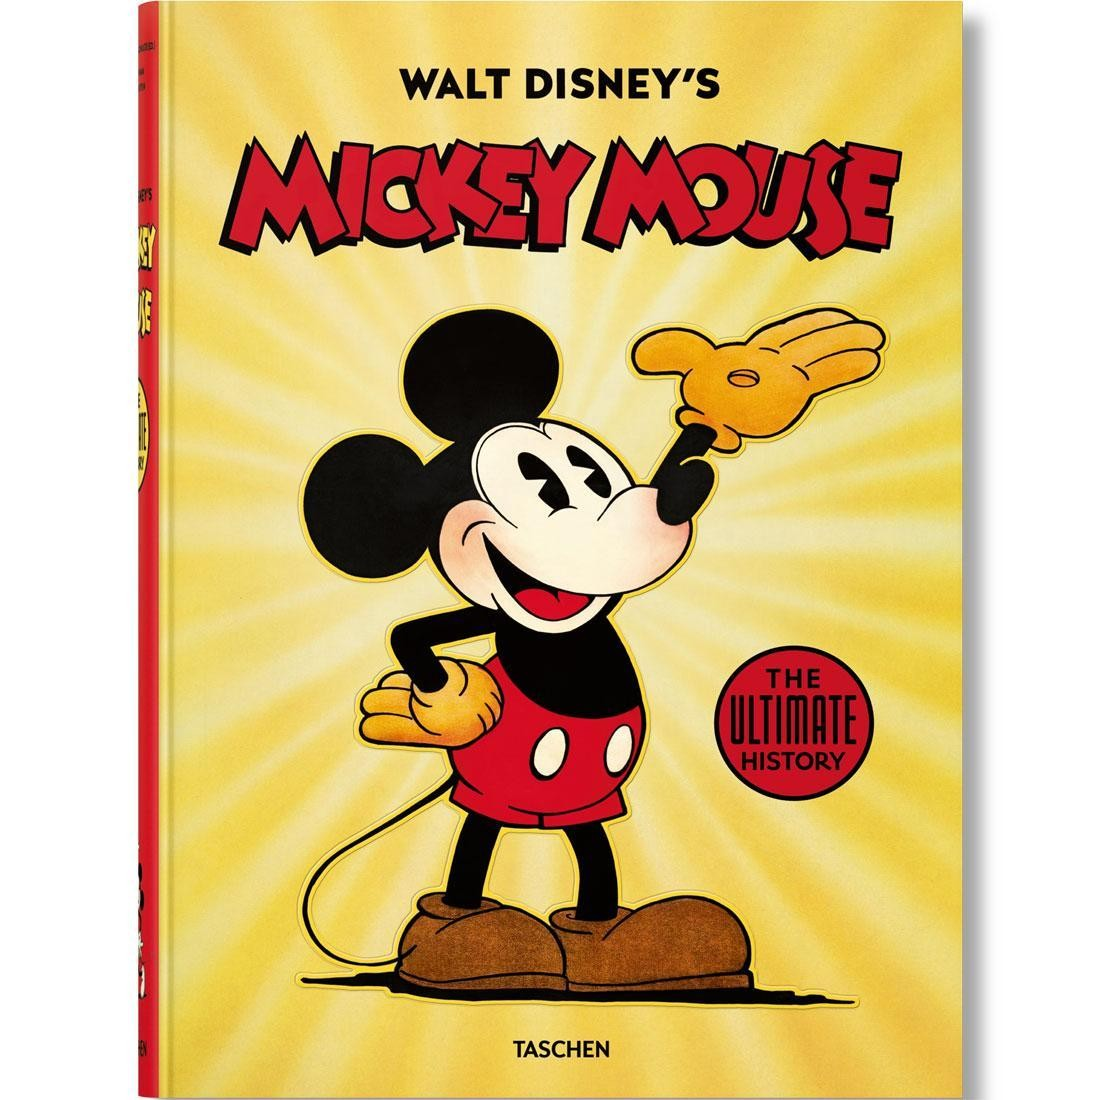 bd288dfeb Walt Disney's Mickey Mouse: The Ultimate History Book yellow hardcover